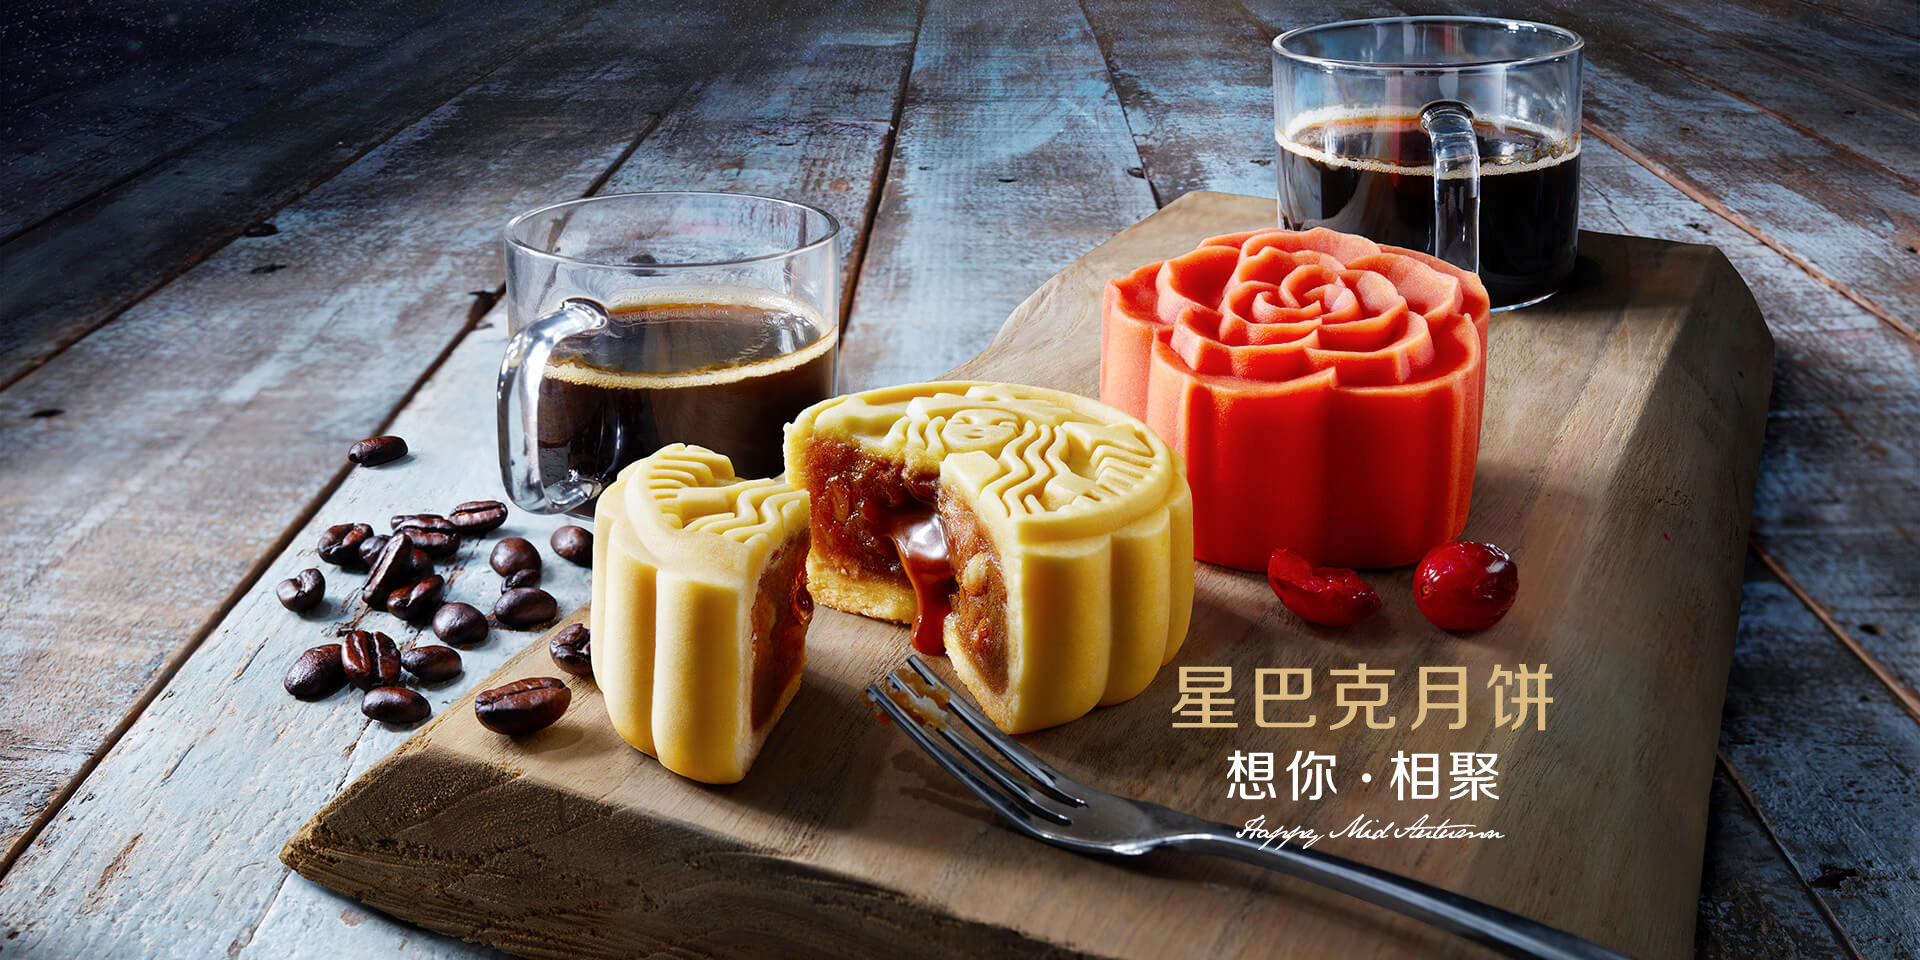 starbucks_mooncake_2.jpg